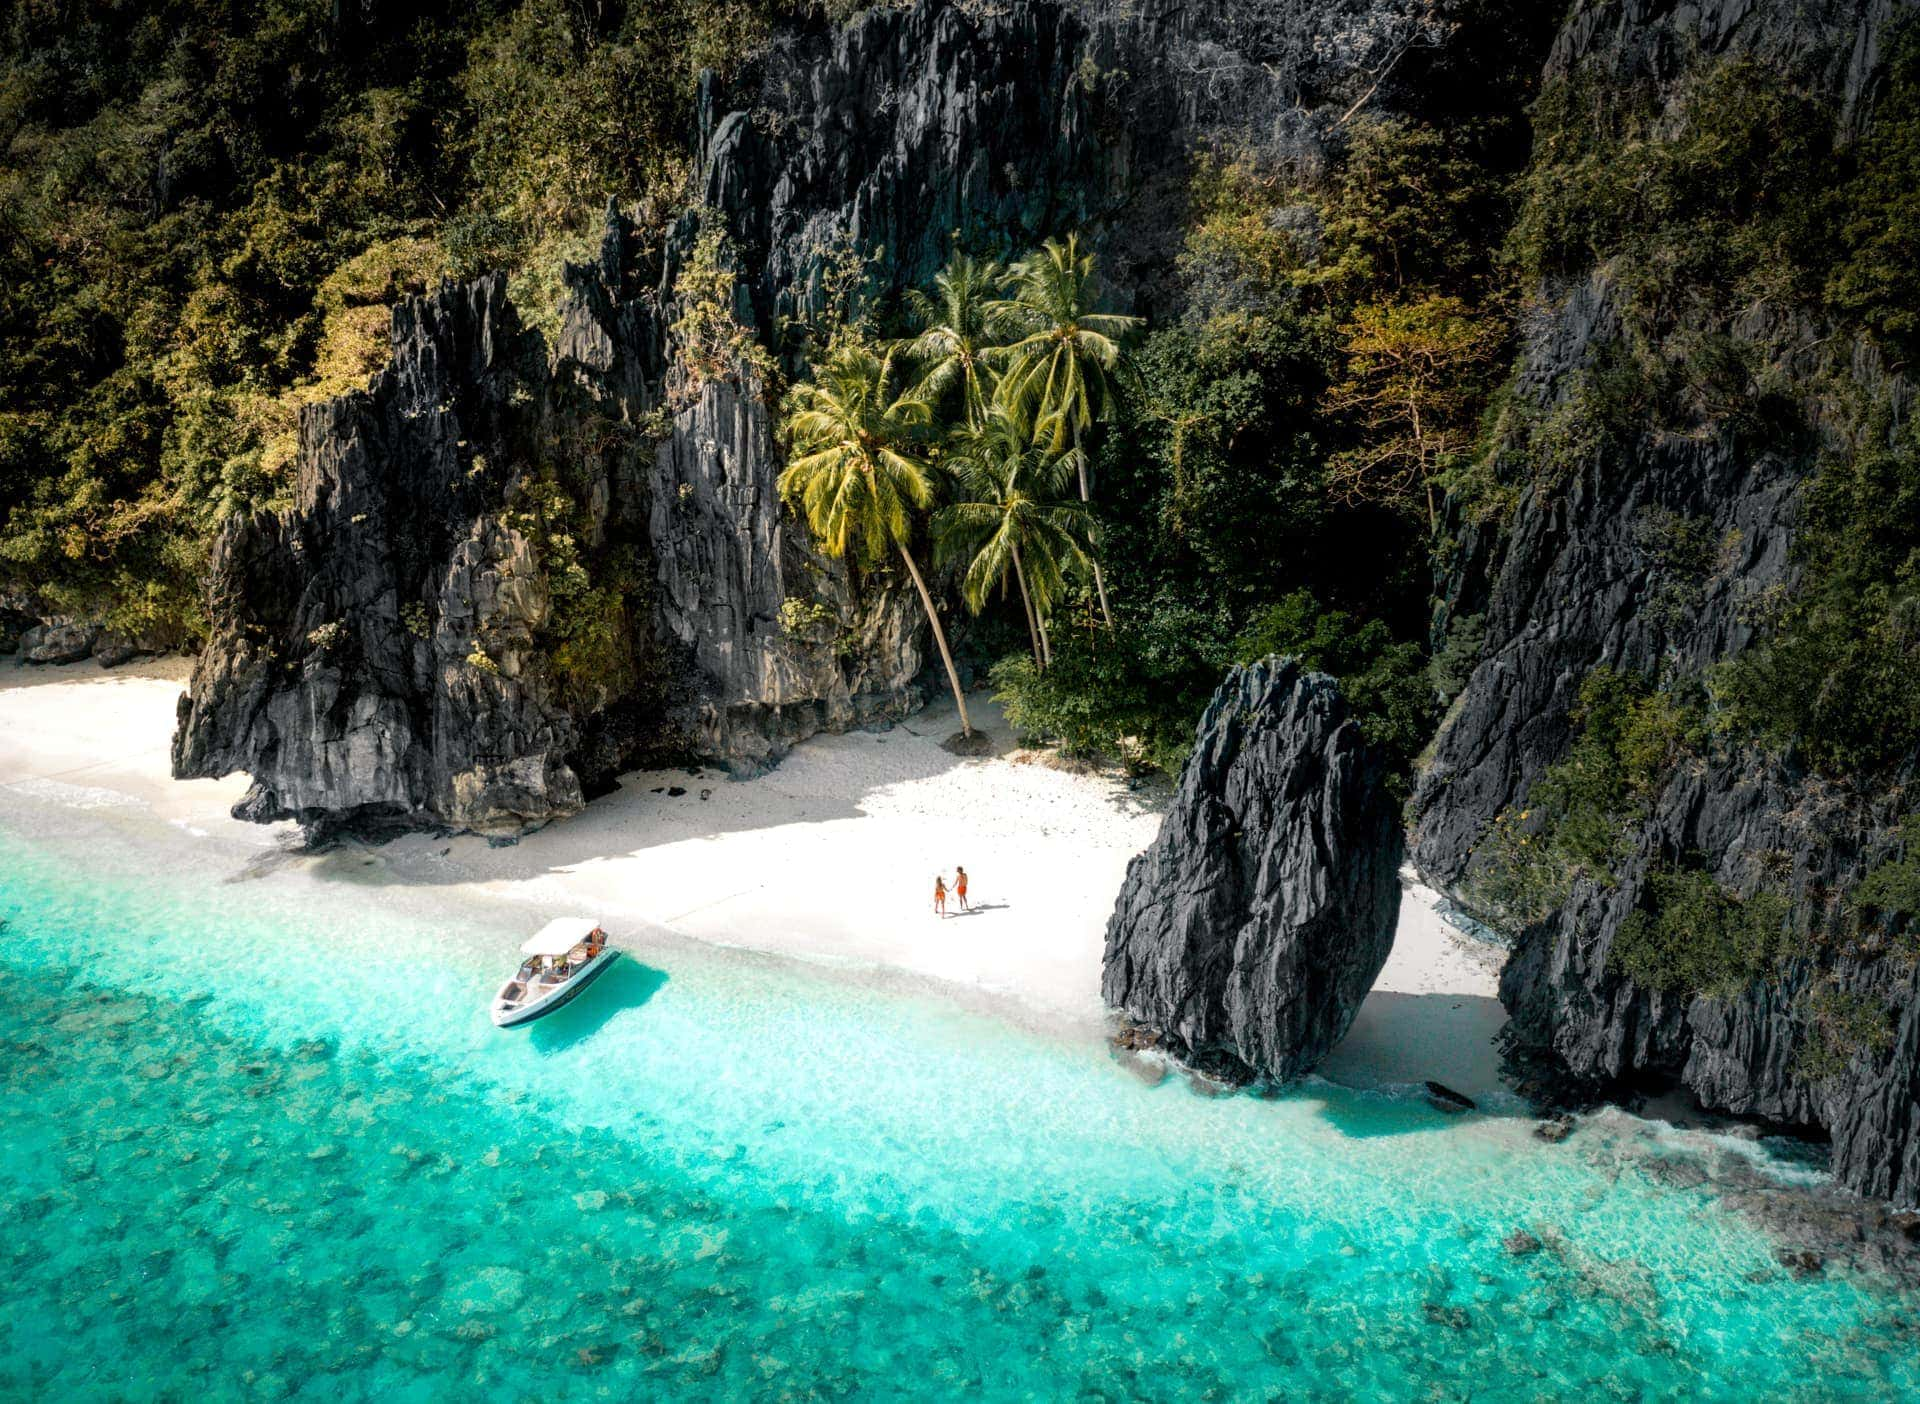 El Nido Travel Guide 9 Things To Do In El Nido Palawan